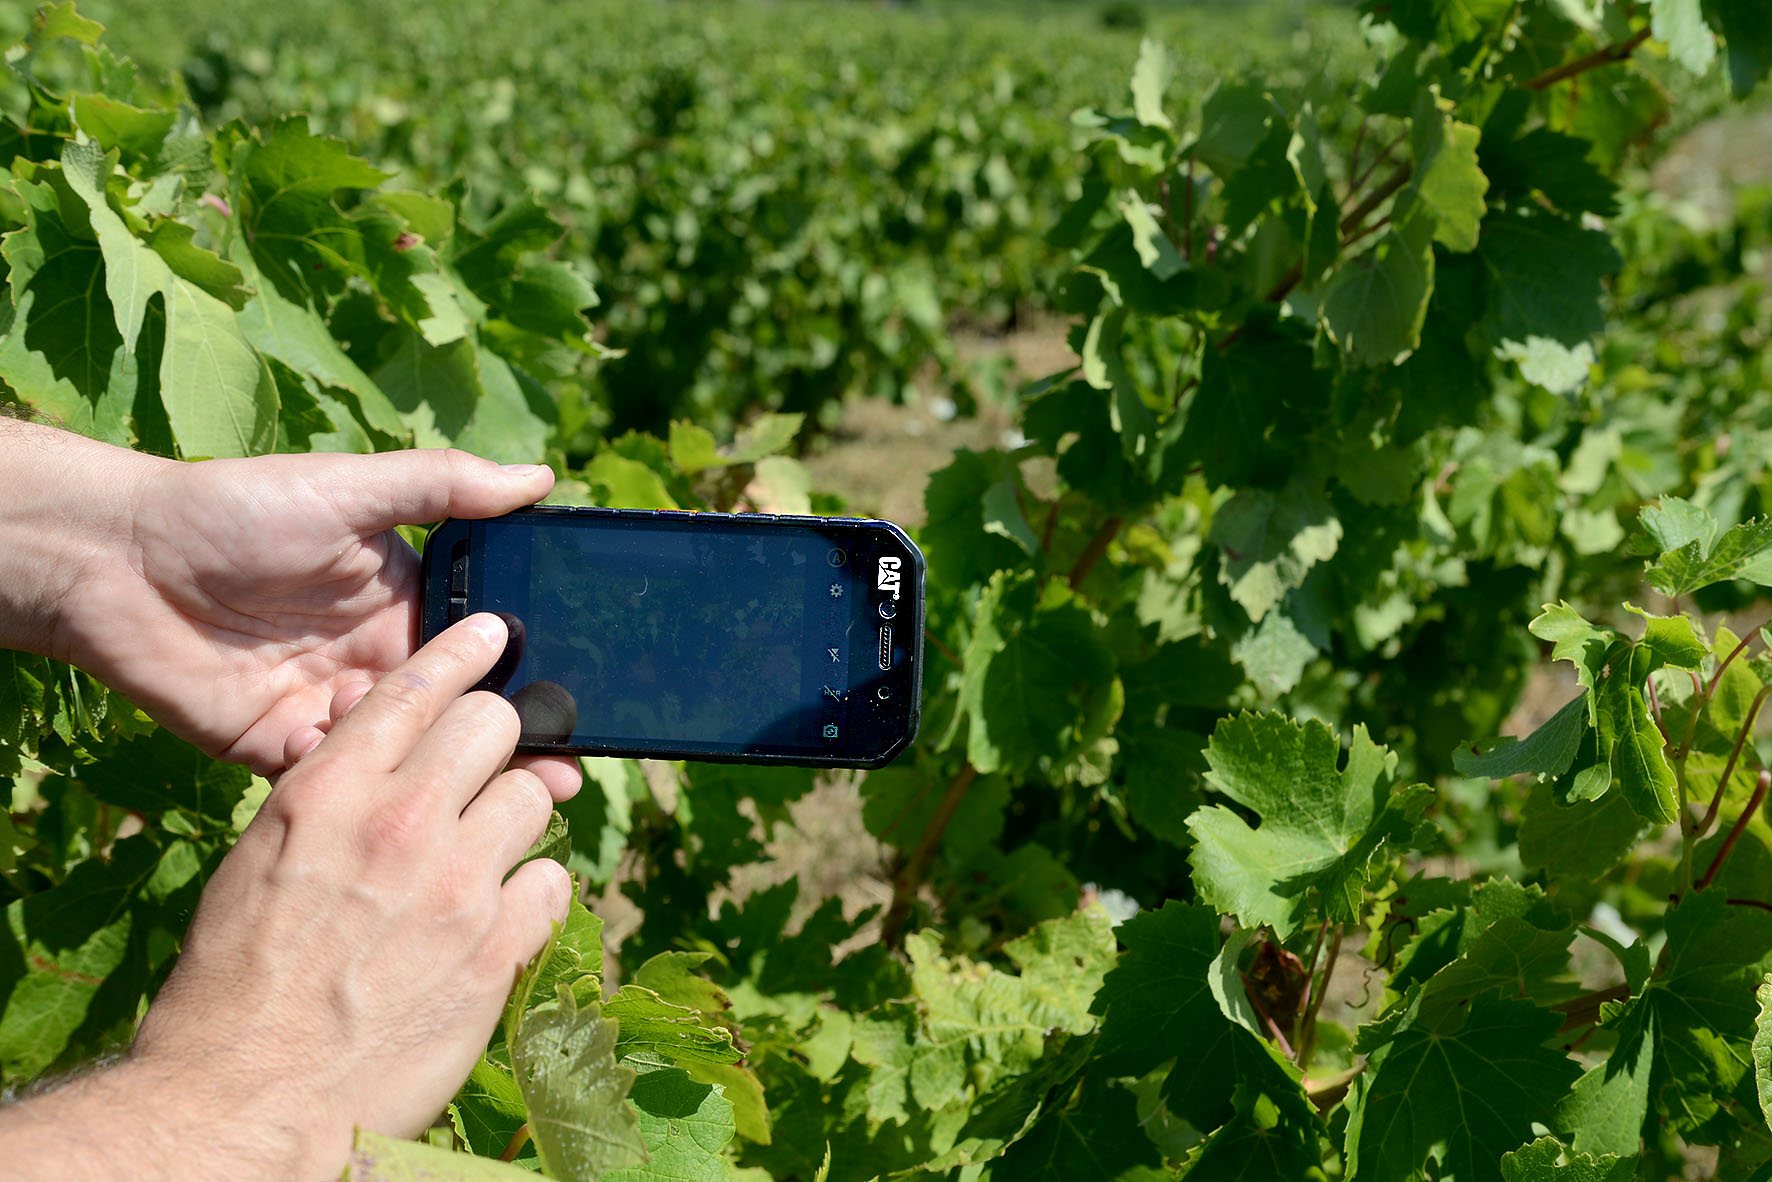 The Cat S41 smartphone in use in a winery | Cat phones